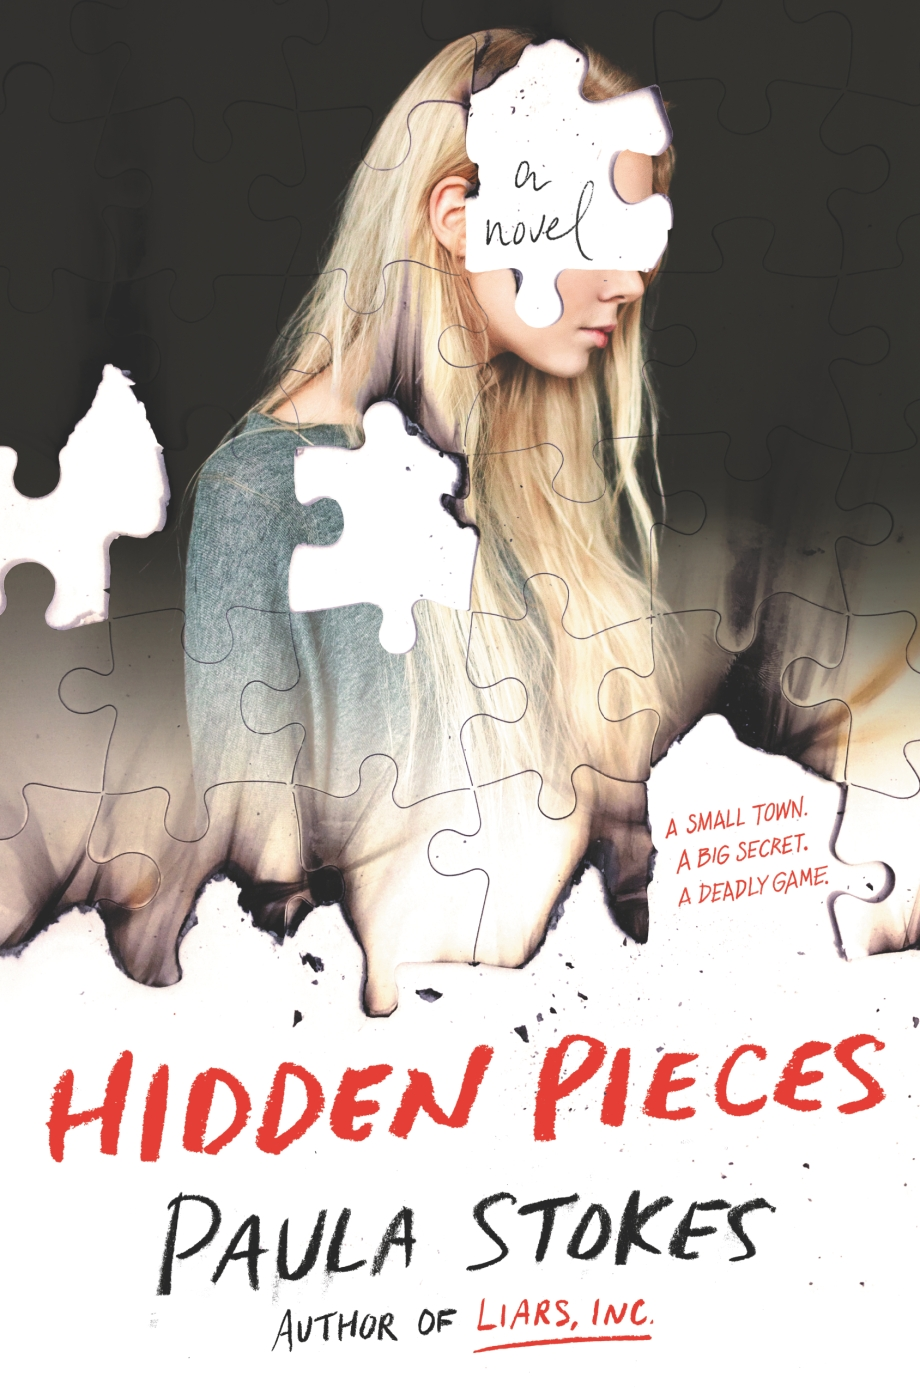 HiddenPieces_HC_C with tag